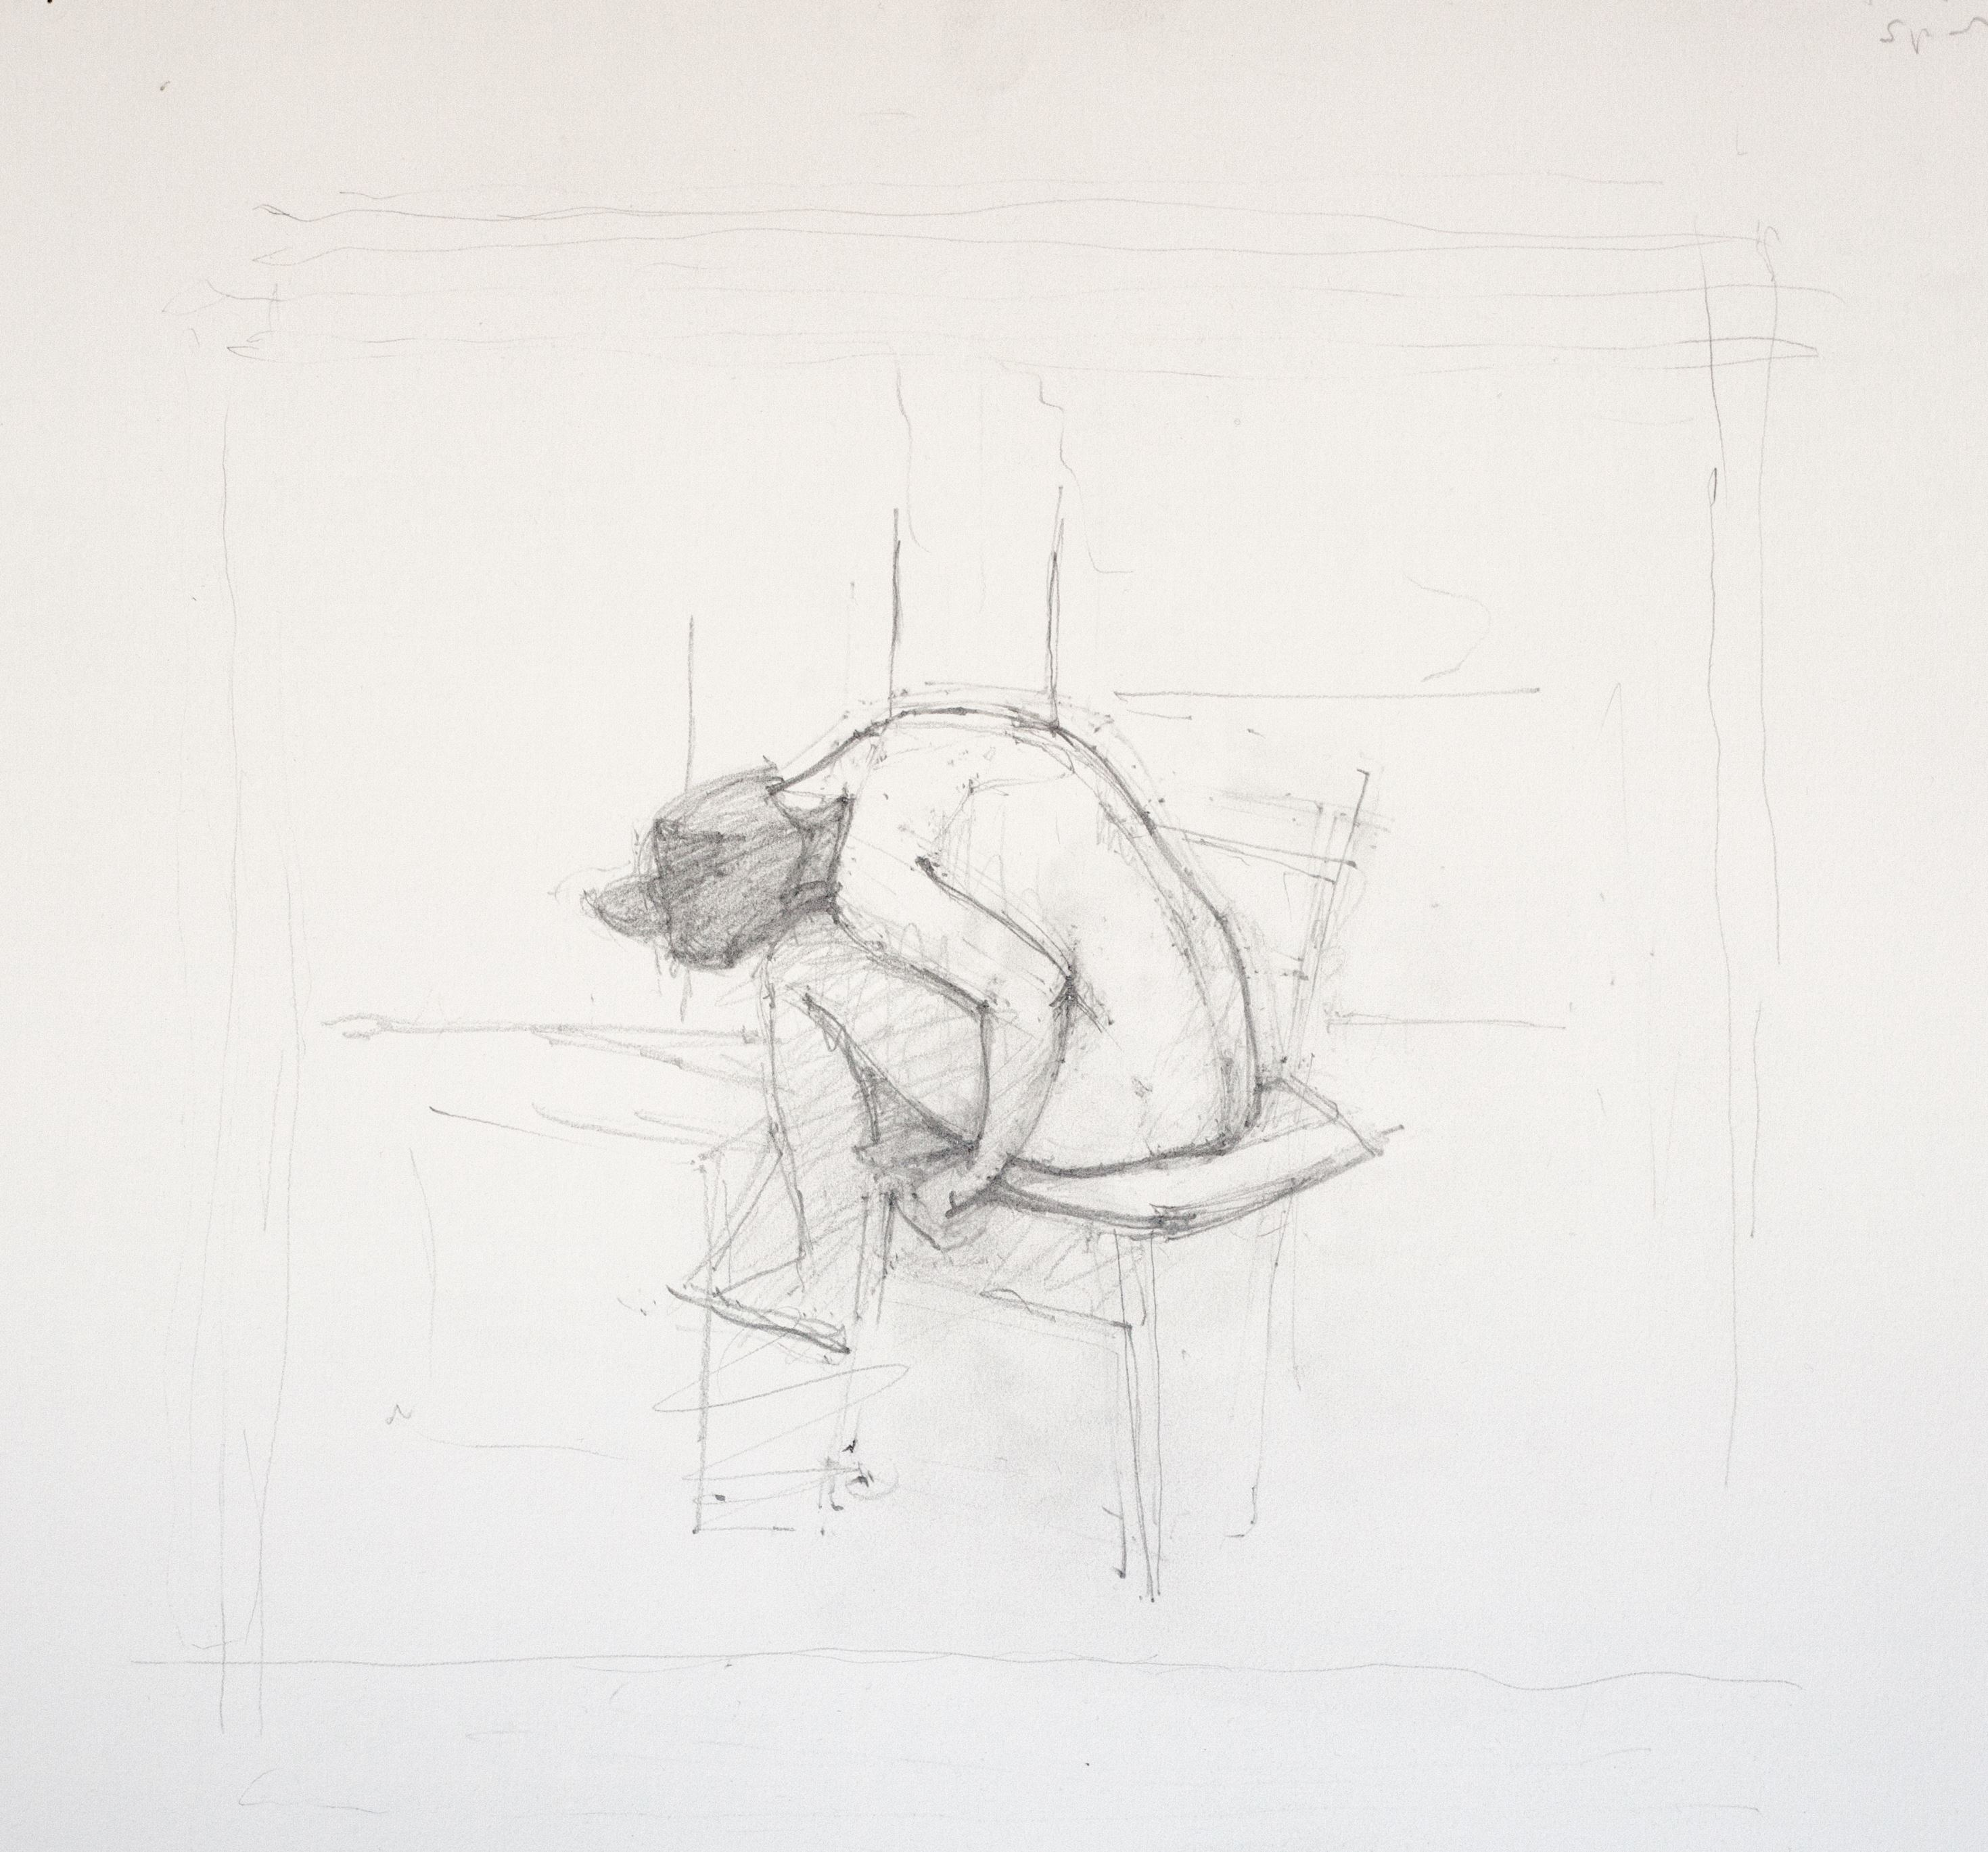 Study for Reclining Back II, 2013